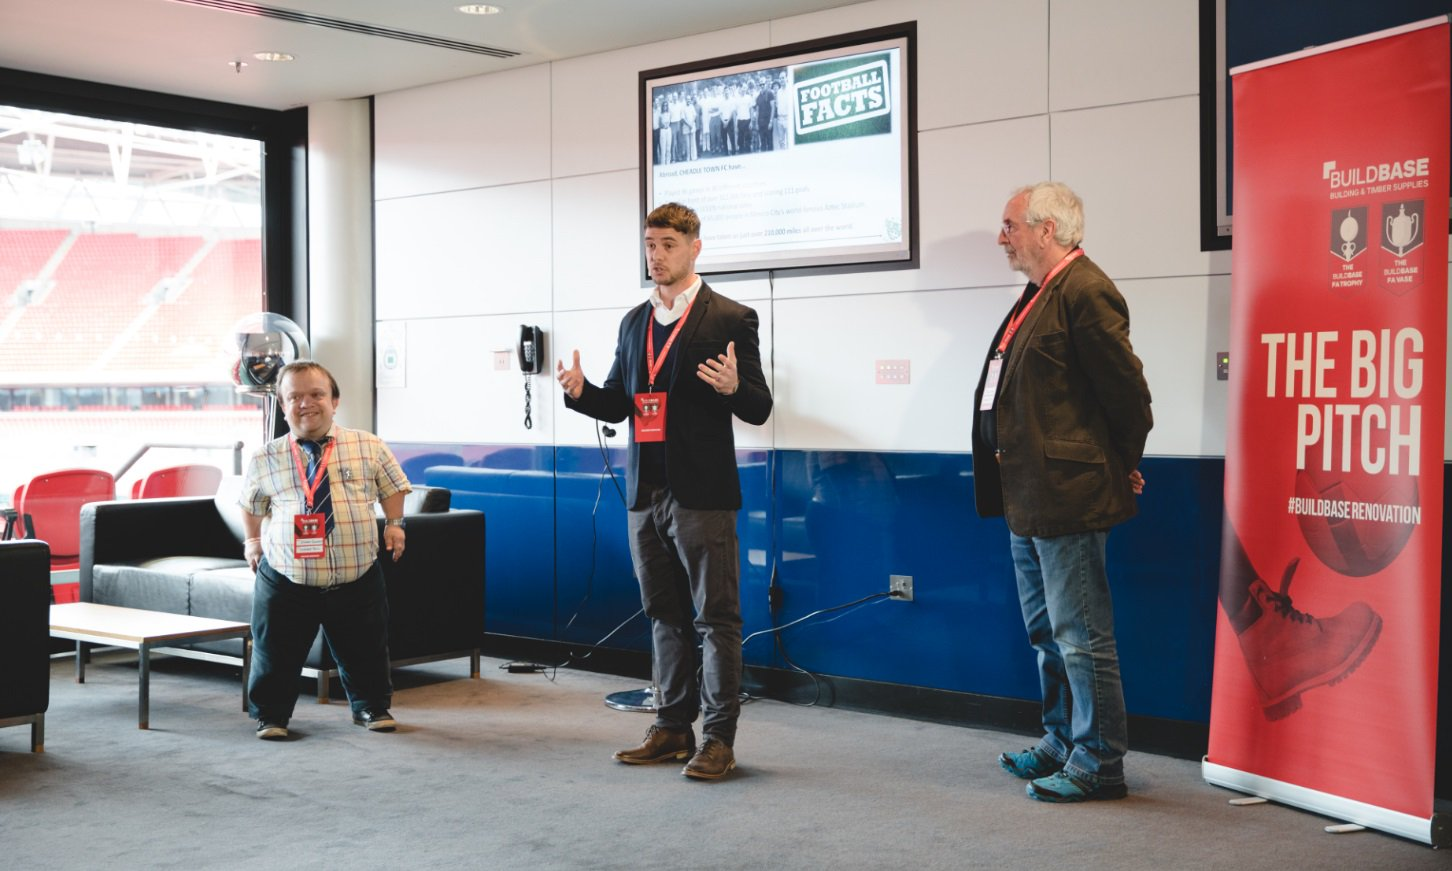 Craig Brennan (centre) with committee members Stuart Crawford and Brian Lindon during the presentation day at Wembley Stadium.